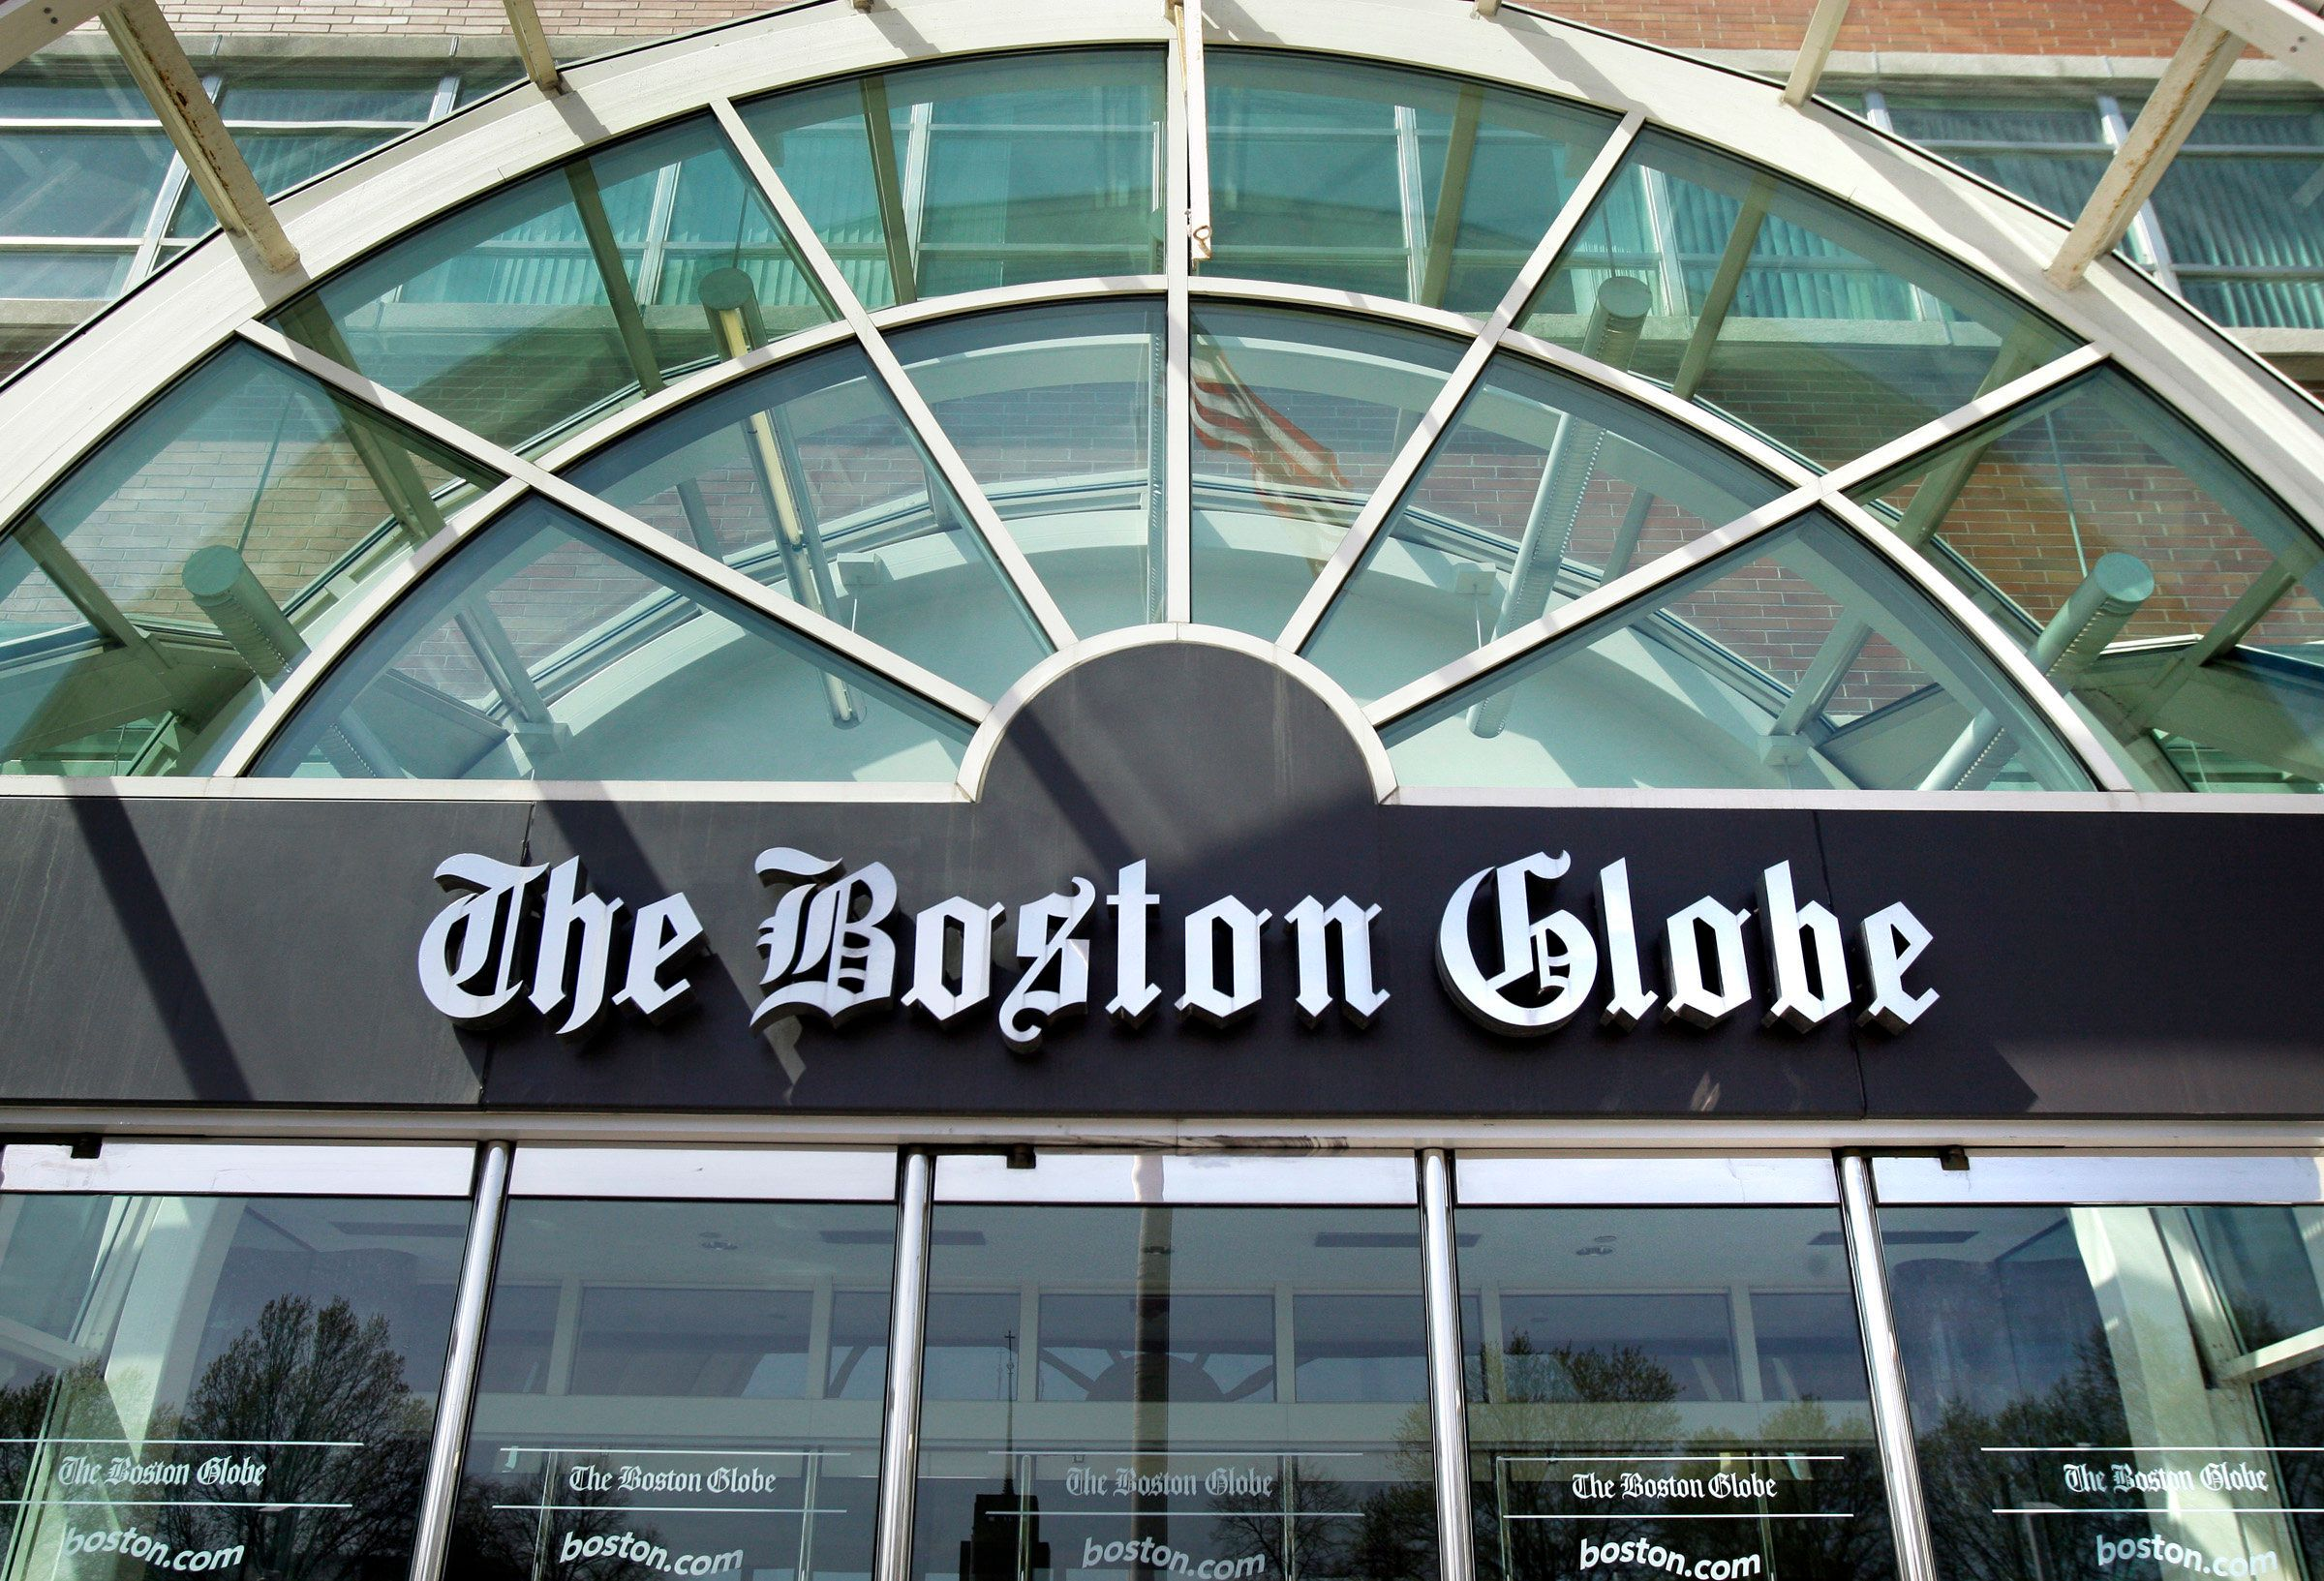 The facade of The Boston Globe building is seen in Boston Thursday, April 30, 2009. The publisher of The Boston Globe has warned employees to be ready to make sacrifices but said he's hopeful that the paper will survive a threatened closure by its owner, The New York Times Co. Publisher Steve Ainsley sent an e-mail to all employees Thursday, a day before the Times Co.-imposed deadline for the newspaper's unions to agree to $20 million in concessions or face a possible shutdown. (AP Photo/Elise Amendola)